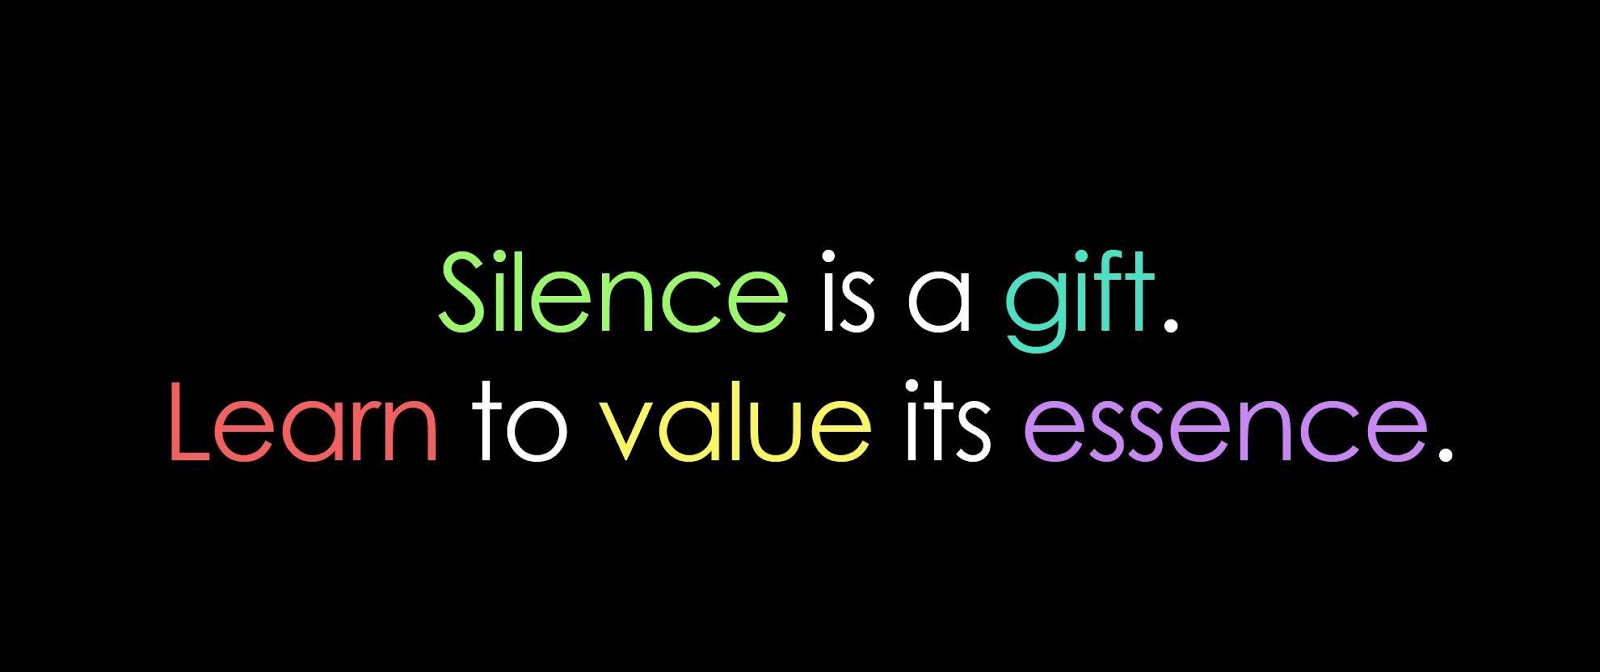 Best Quotes on Silence ~ Best Quotes and Sayings